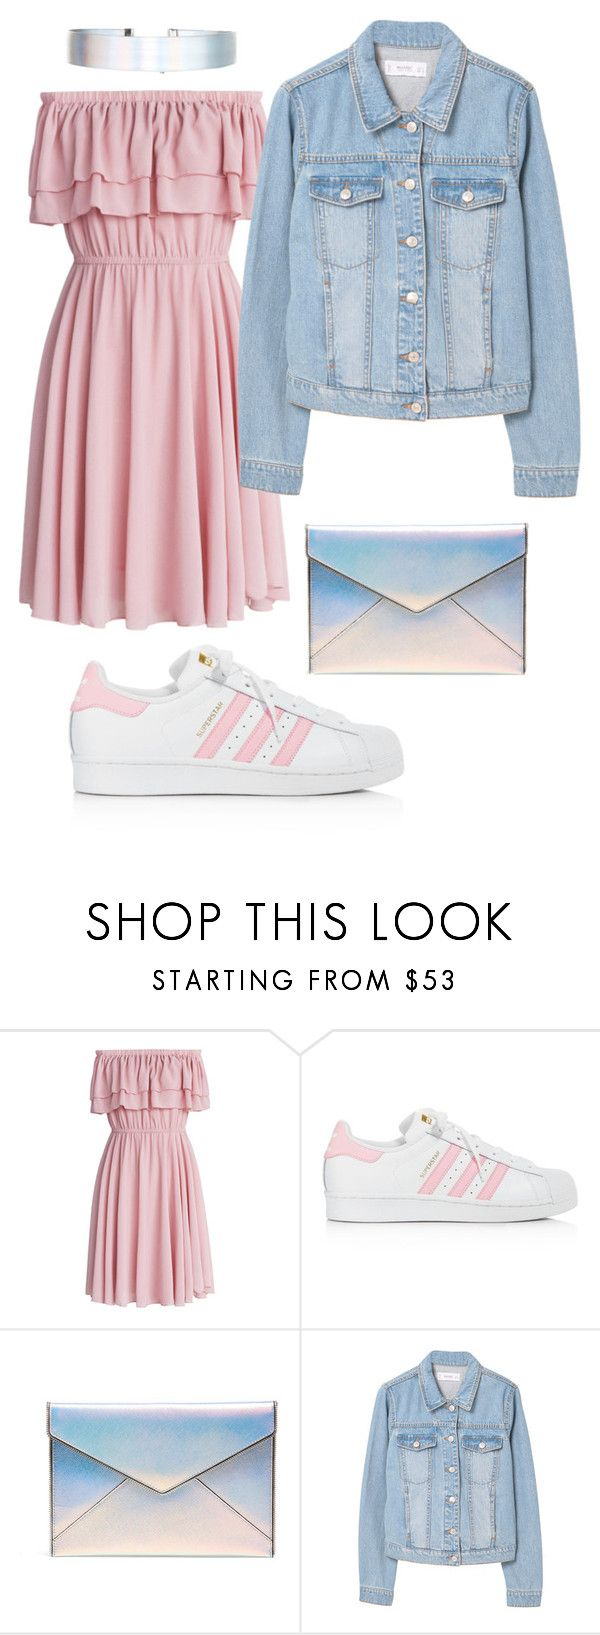 """Untitled #138"" by filipa-novais05 ❤ liked on Polyvore featuring Chicwish, adidas, Rebecca Minkoff, MANGO and Accessorize"